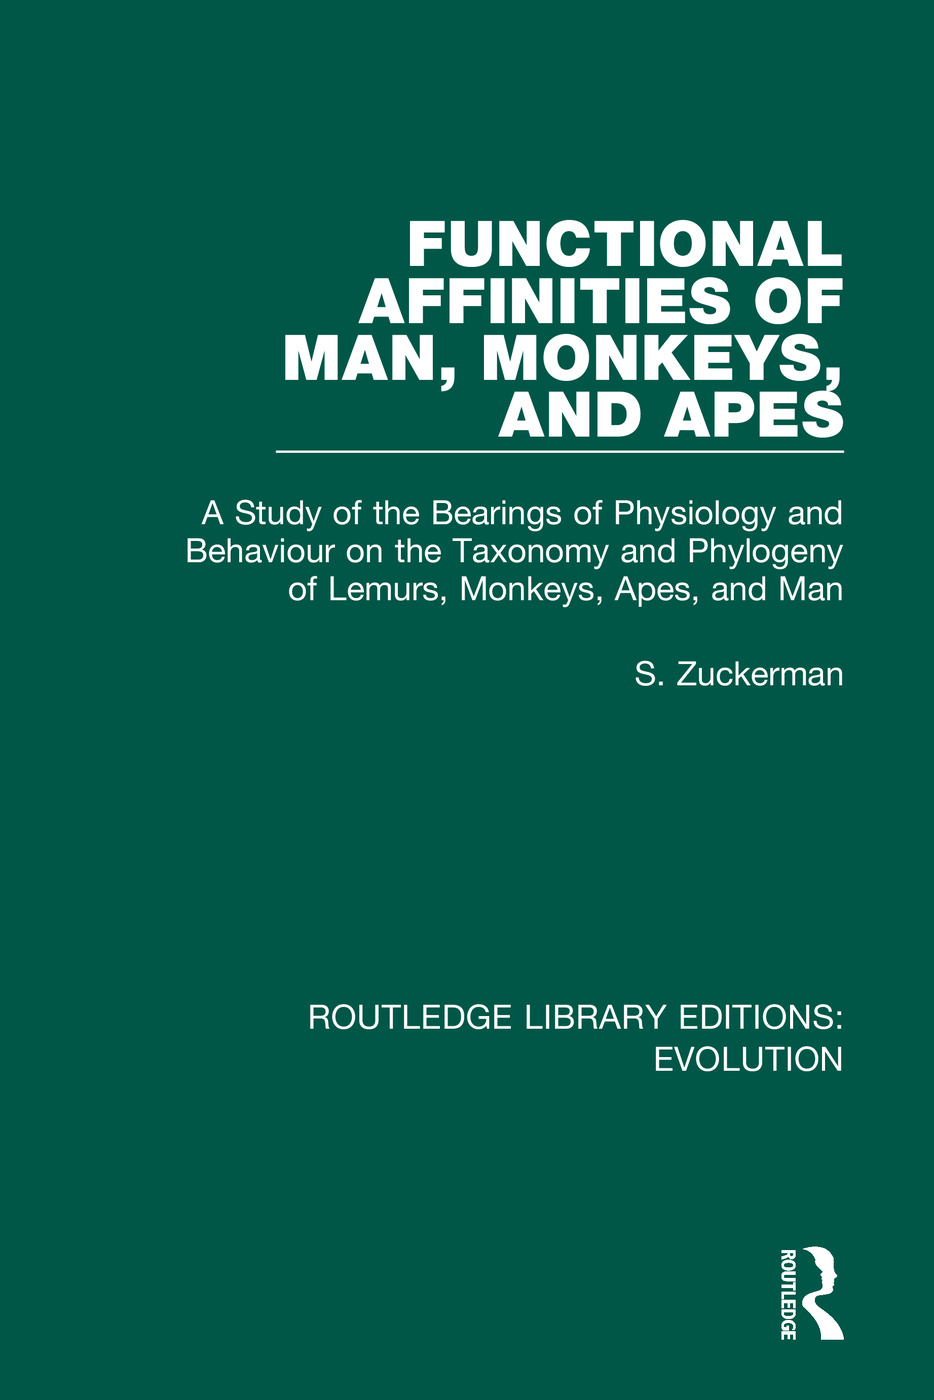 Functional Affinities of Man, Monkeys, and Apes: A Study of the Bearings of Physiology and Behaviour on the Taxonomy and Phylogeny of Lemurs, Monkeys, Apes, and Man book cover